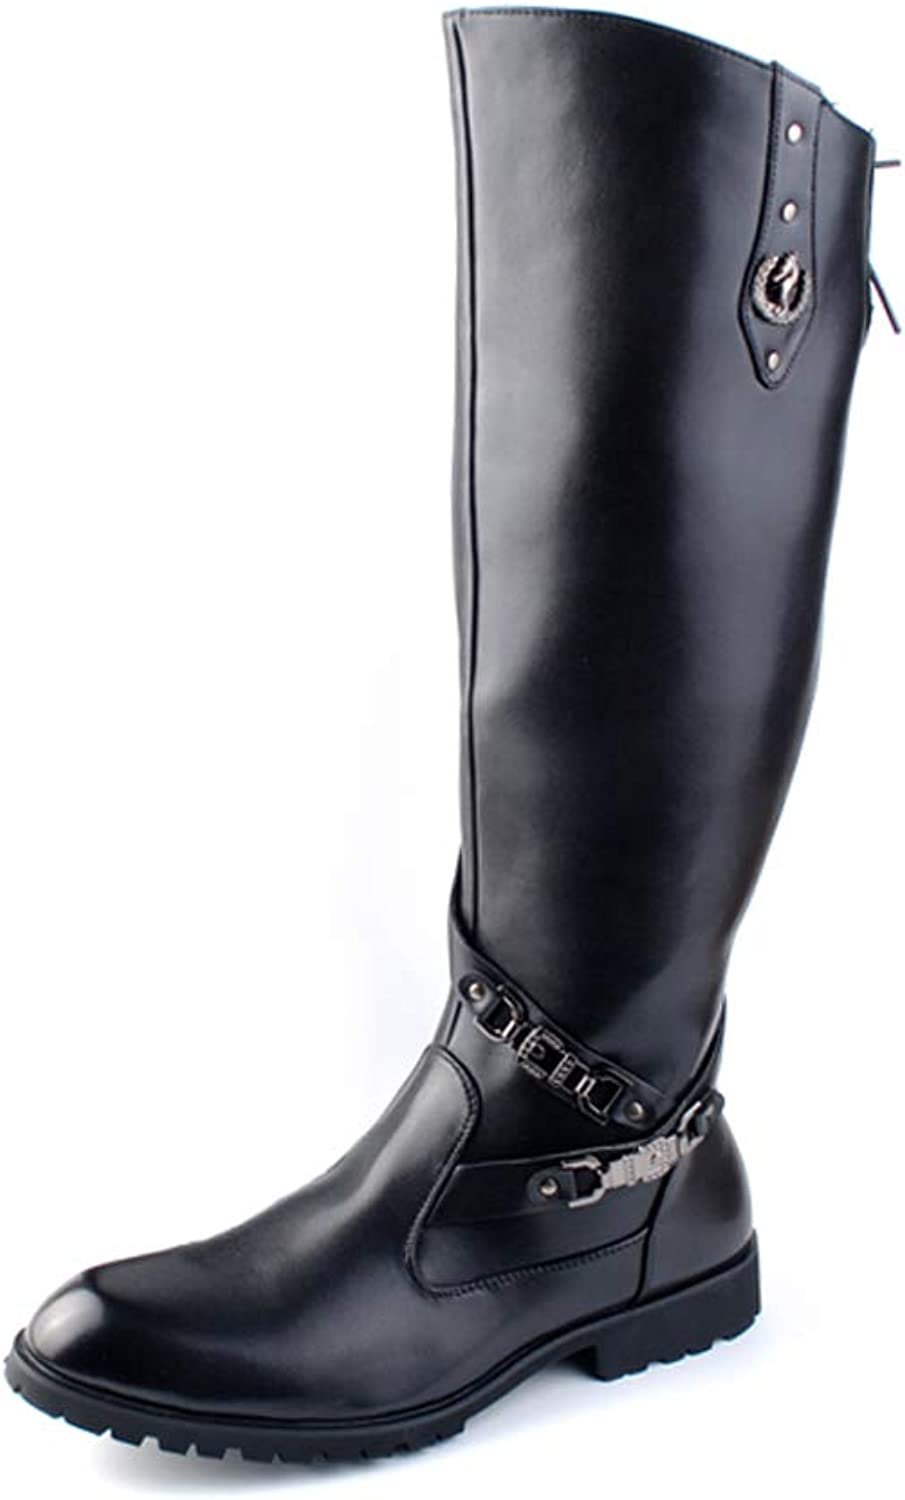 YIJIAN-SHOES Comfortable Boots Men's Fashion comfortable Motorcycle Boots Casual Personality Rivet Rustproof Metal LOGO Knee High Boot Breathable Boots (color   Black, Size   6 UK)